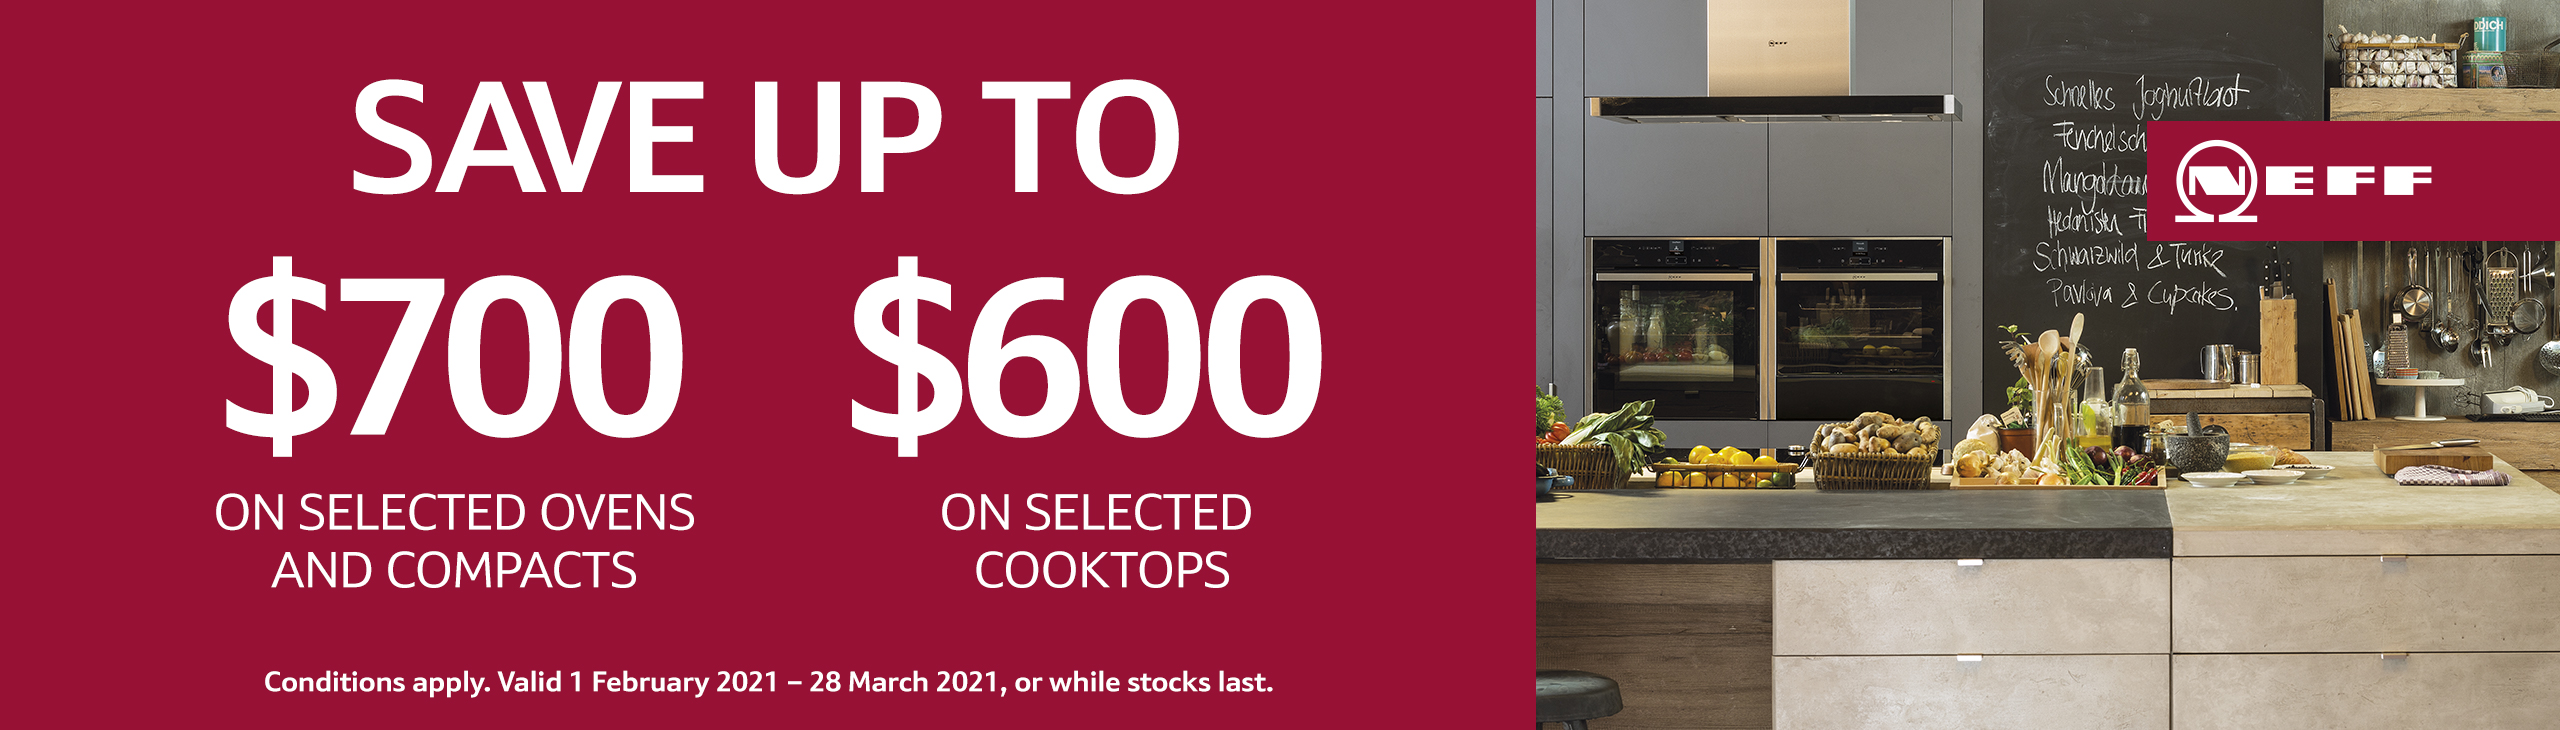 Save on Ovens, Compacts & Cooktops